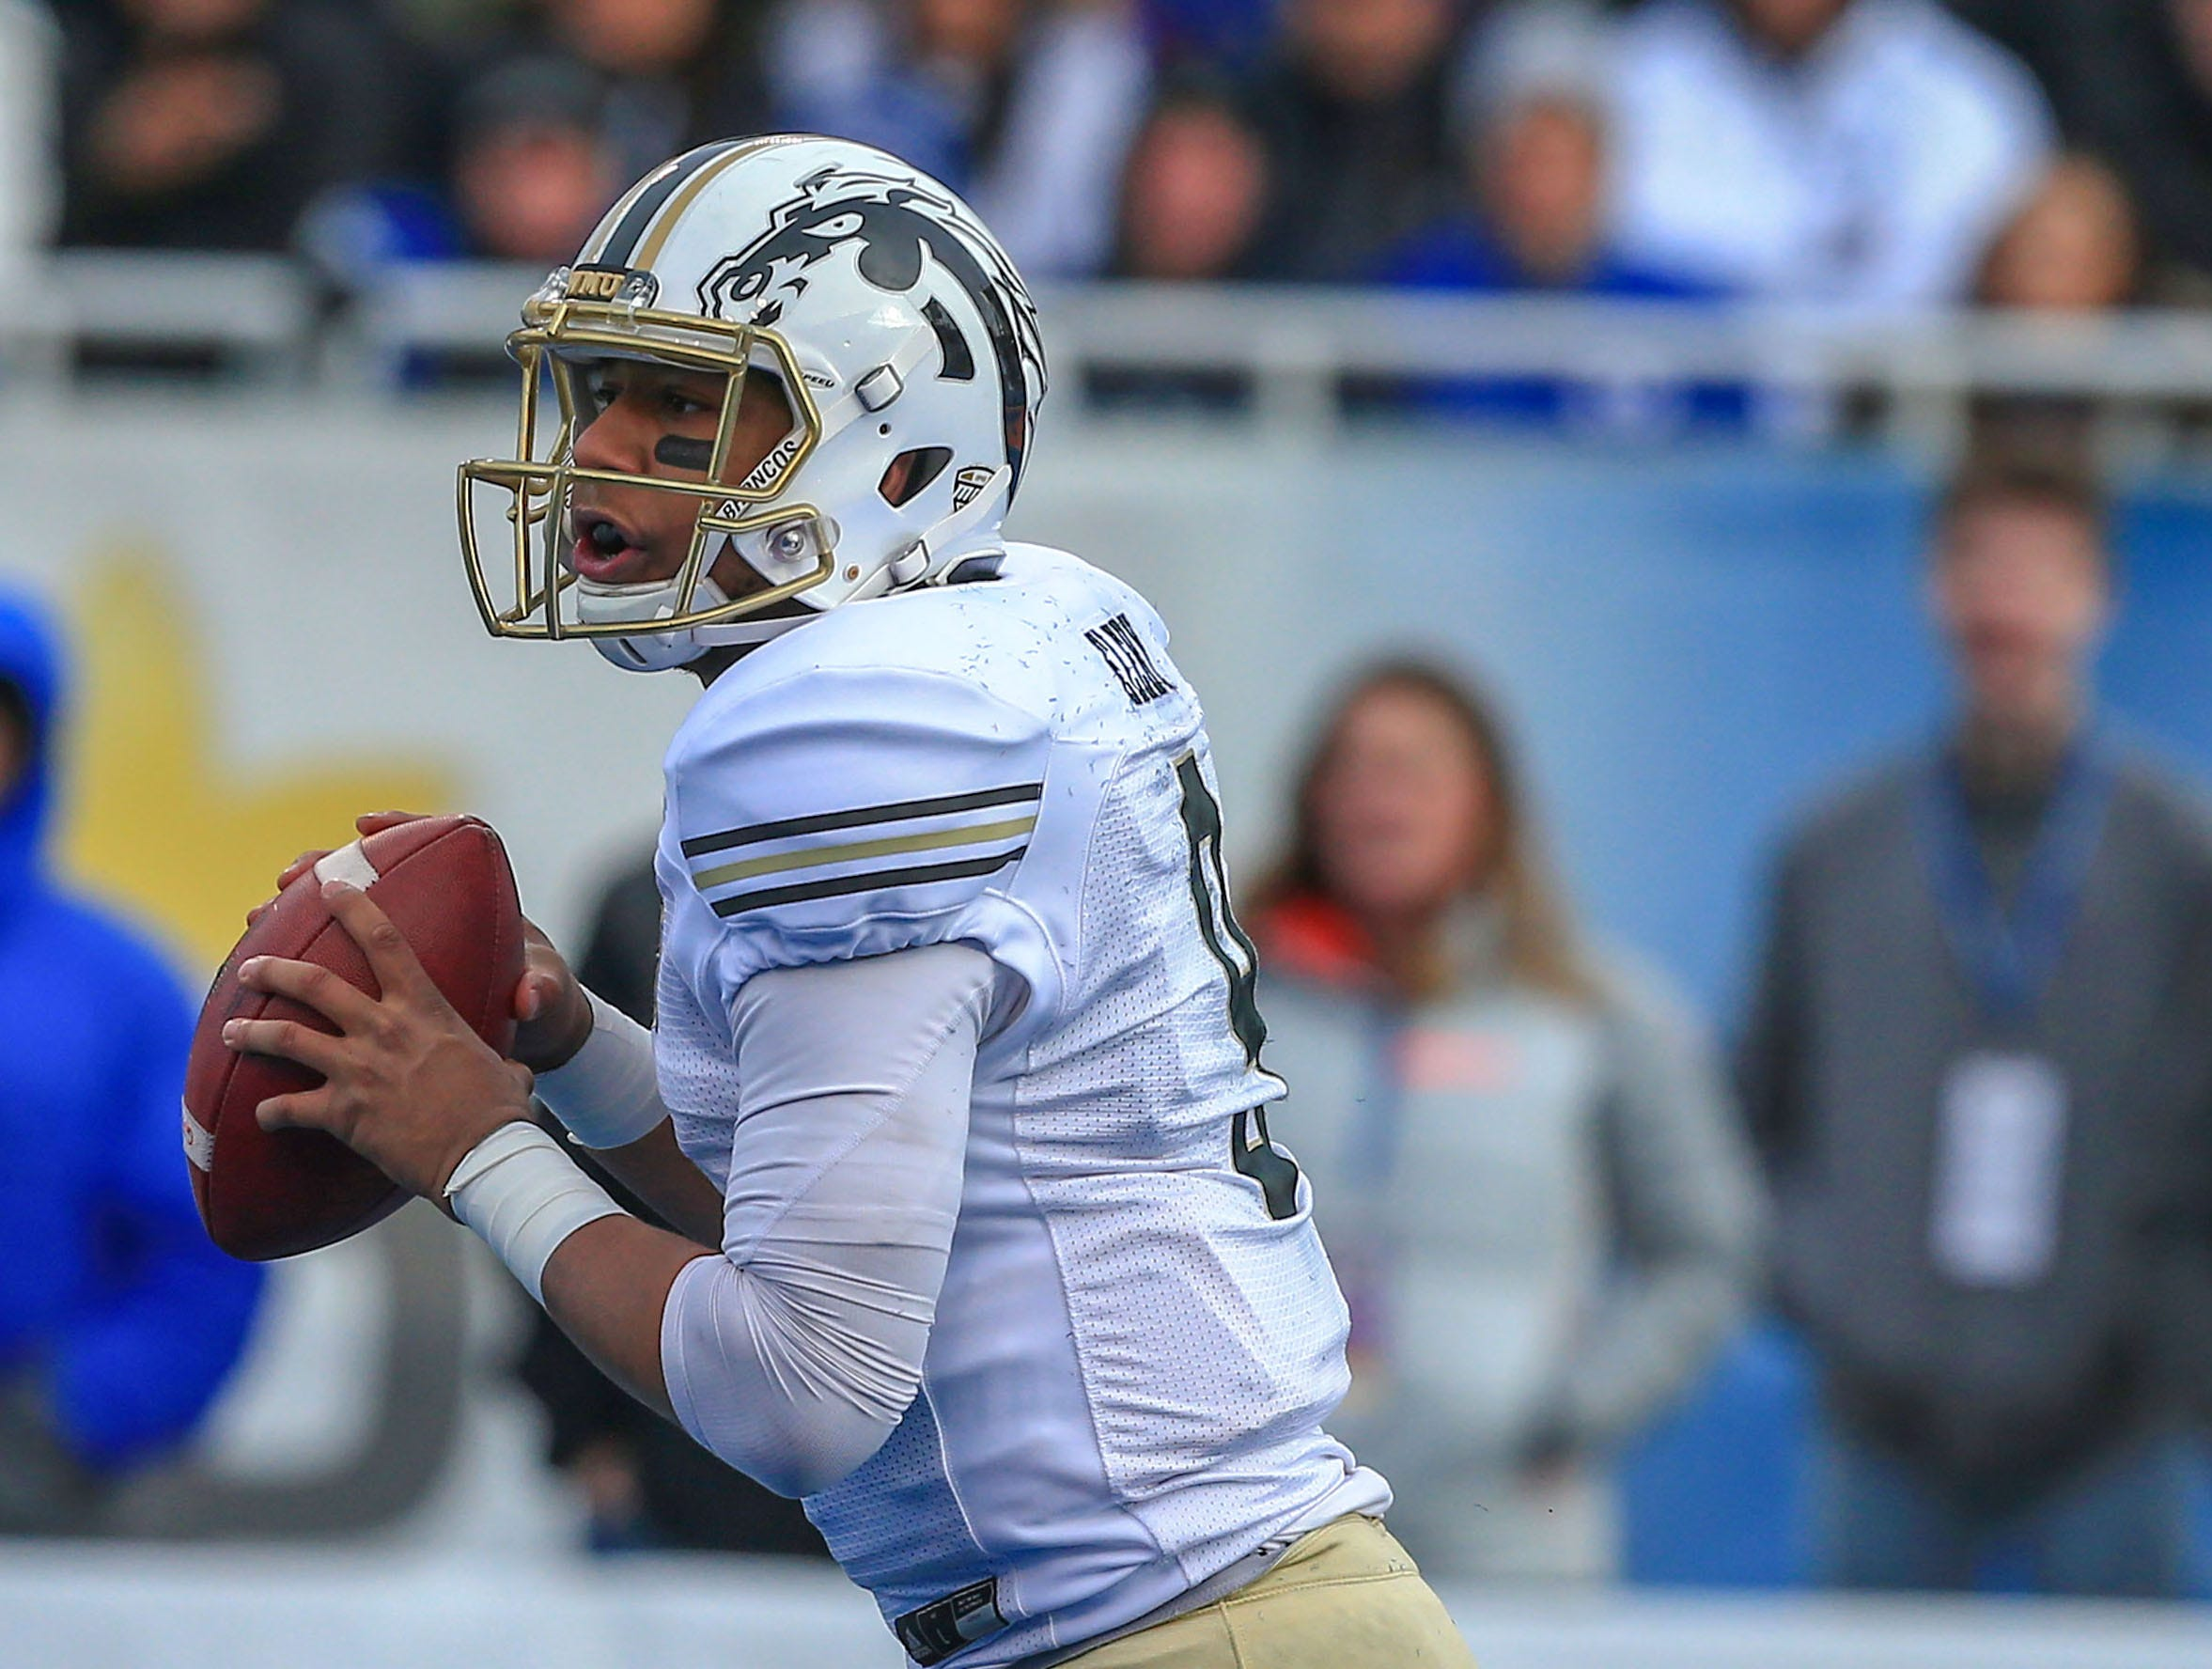 Dec 21, 2018; Boise, ID, United States; Western Michigan Broncos quarterback Kaleb Eleby (9) during the first half against the Brigham Young Cougars during the  2018 Potato Bowl at Albertsons Stadium. Mandatory Credit: Brian Losness-USA TODAY Sports